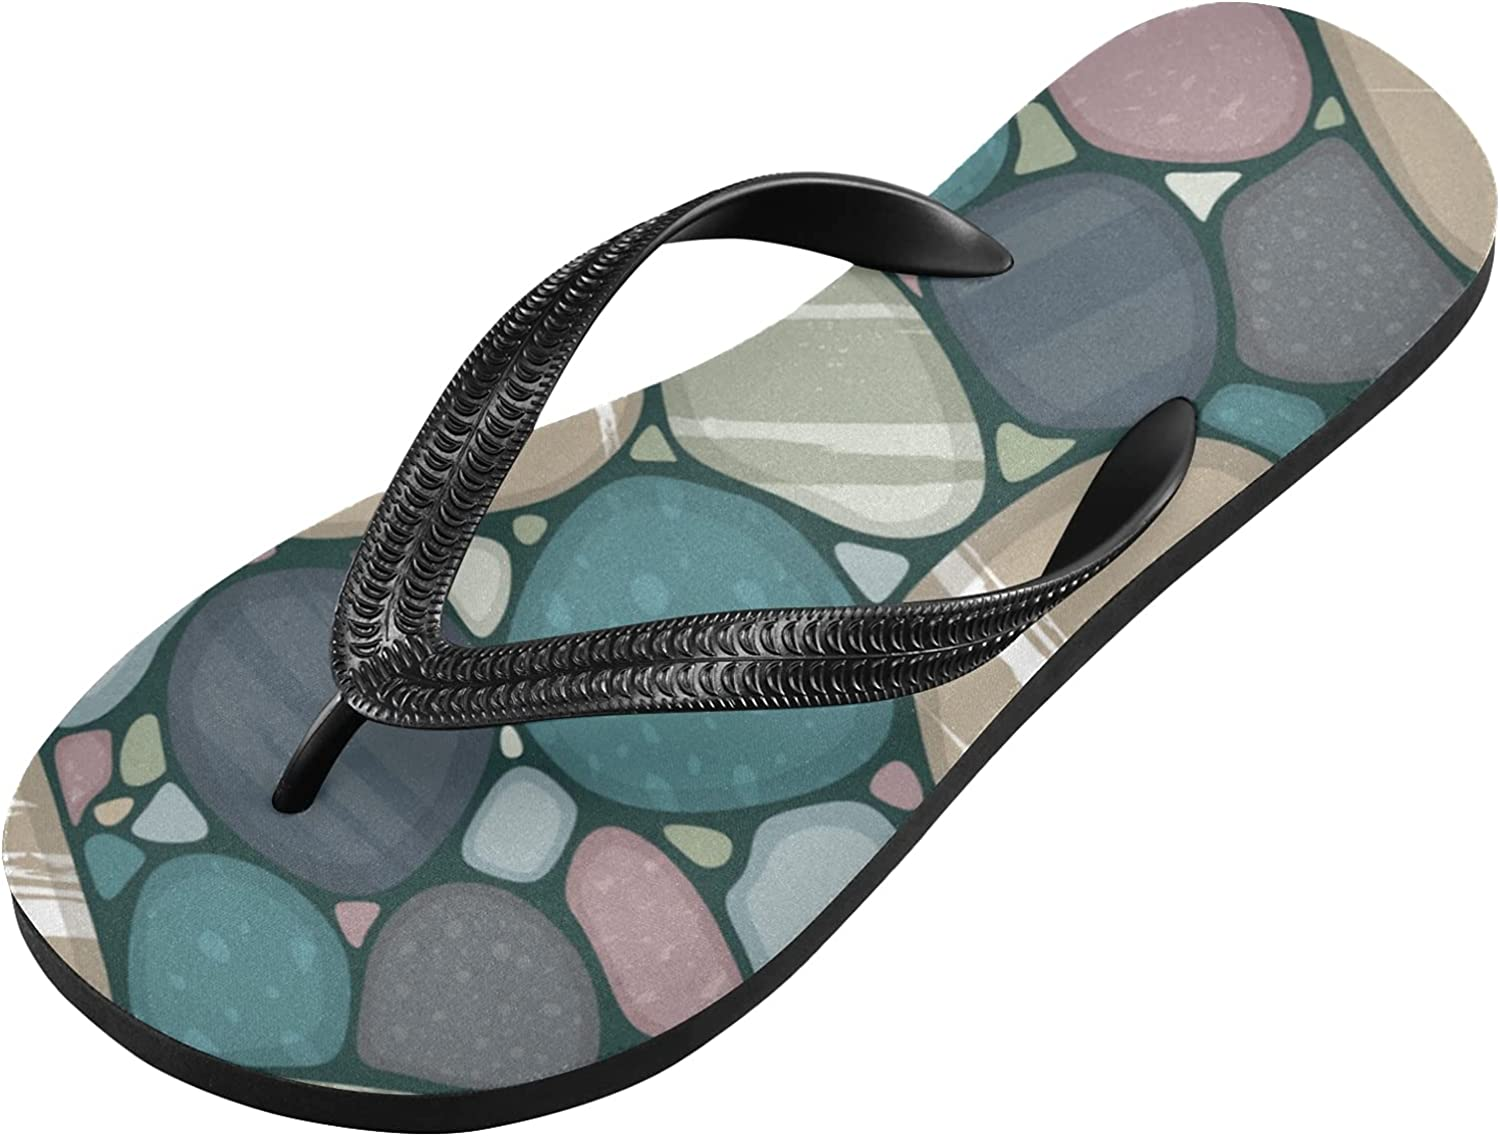 xigua Multi-Colored Stones Recommendation Flip Light-Weight Flops Non-slip Comf We OFFer at cheap prices